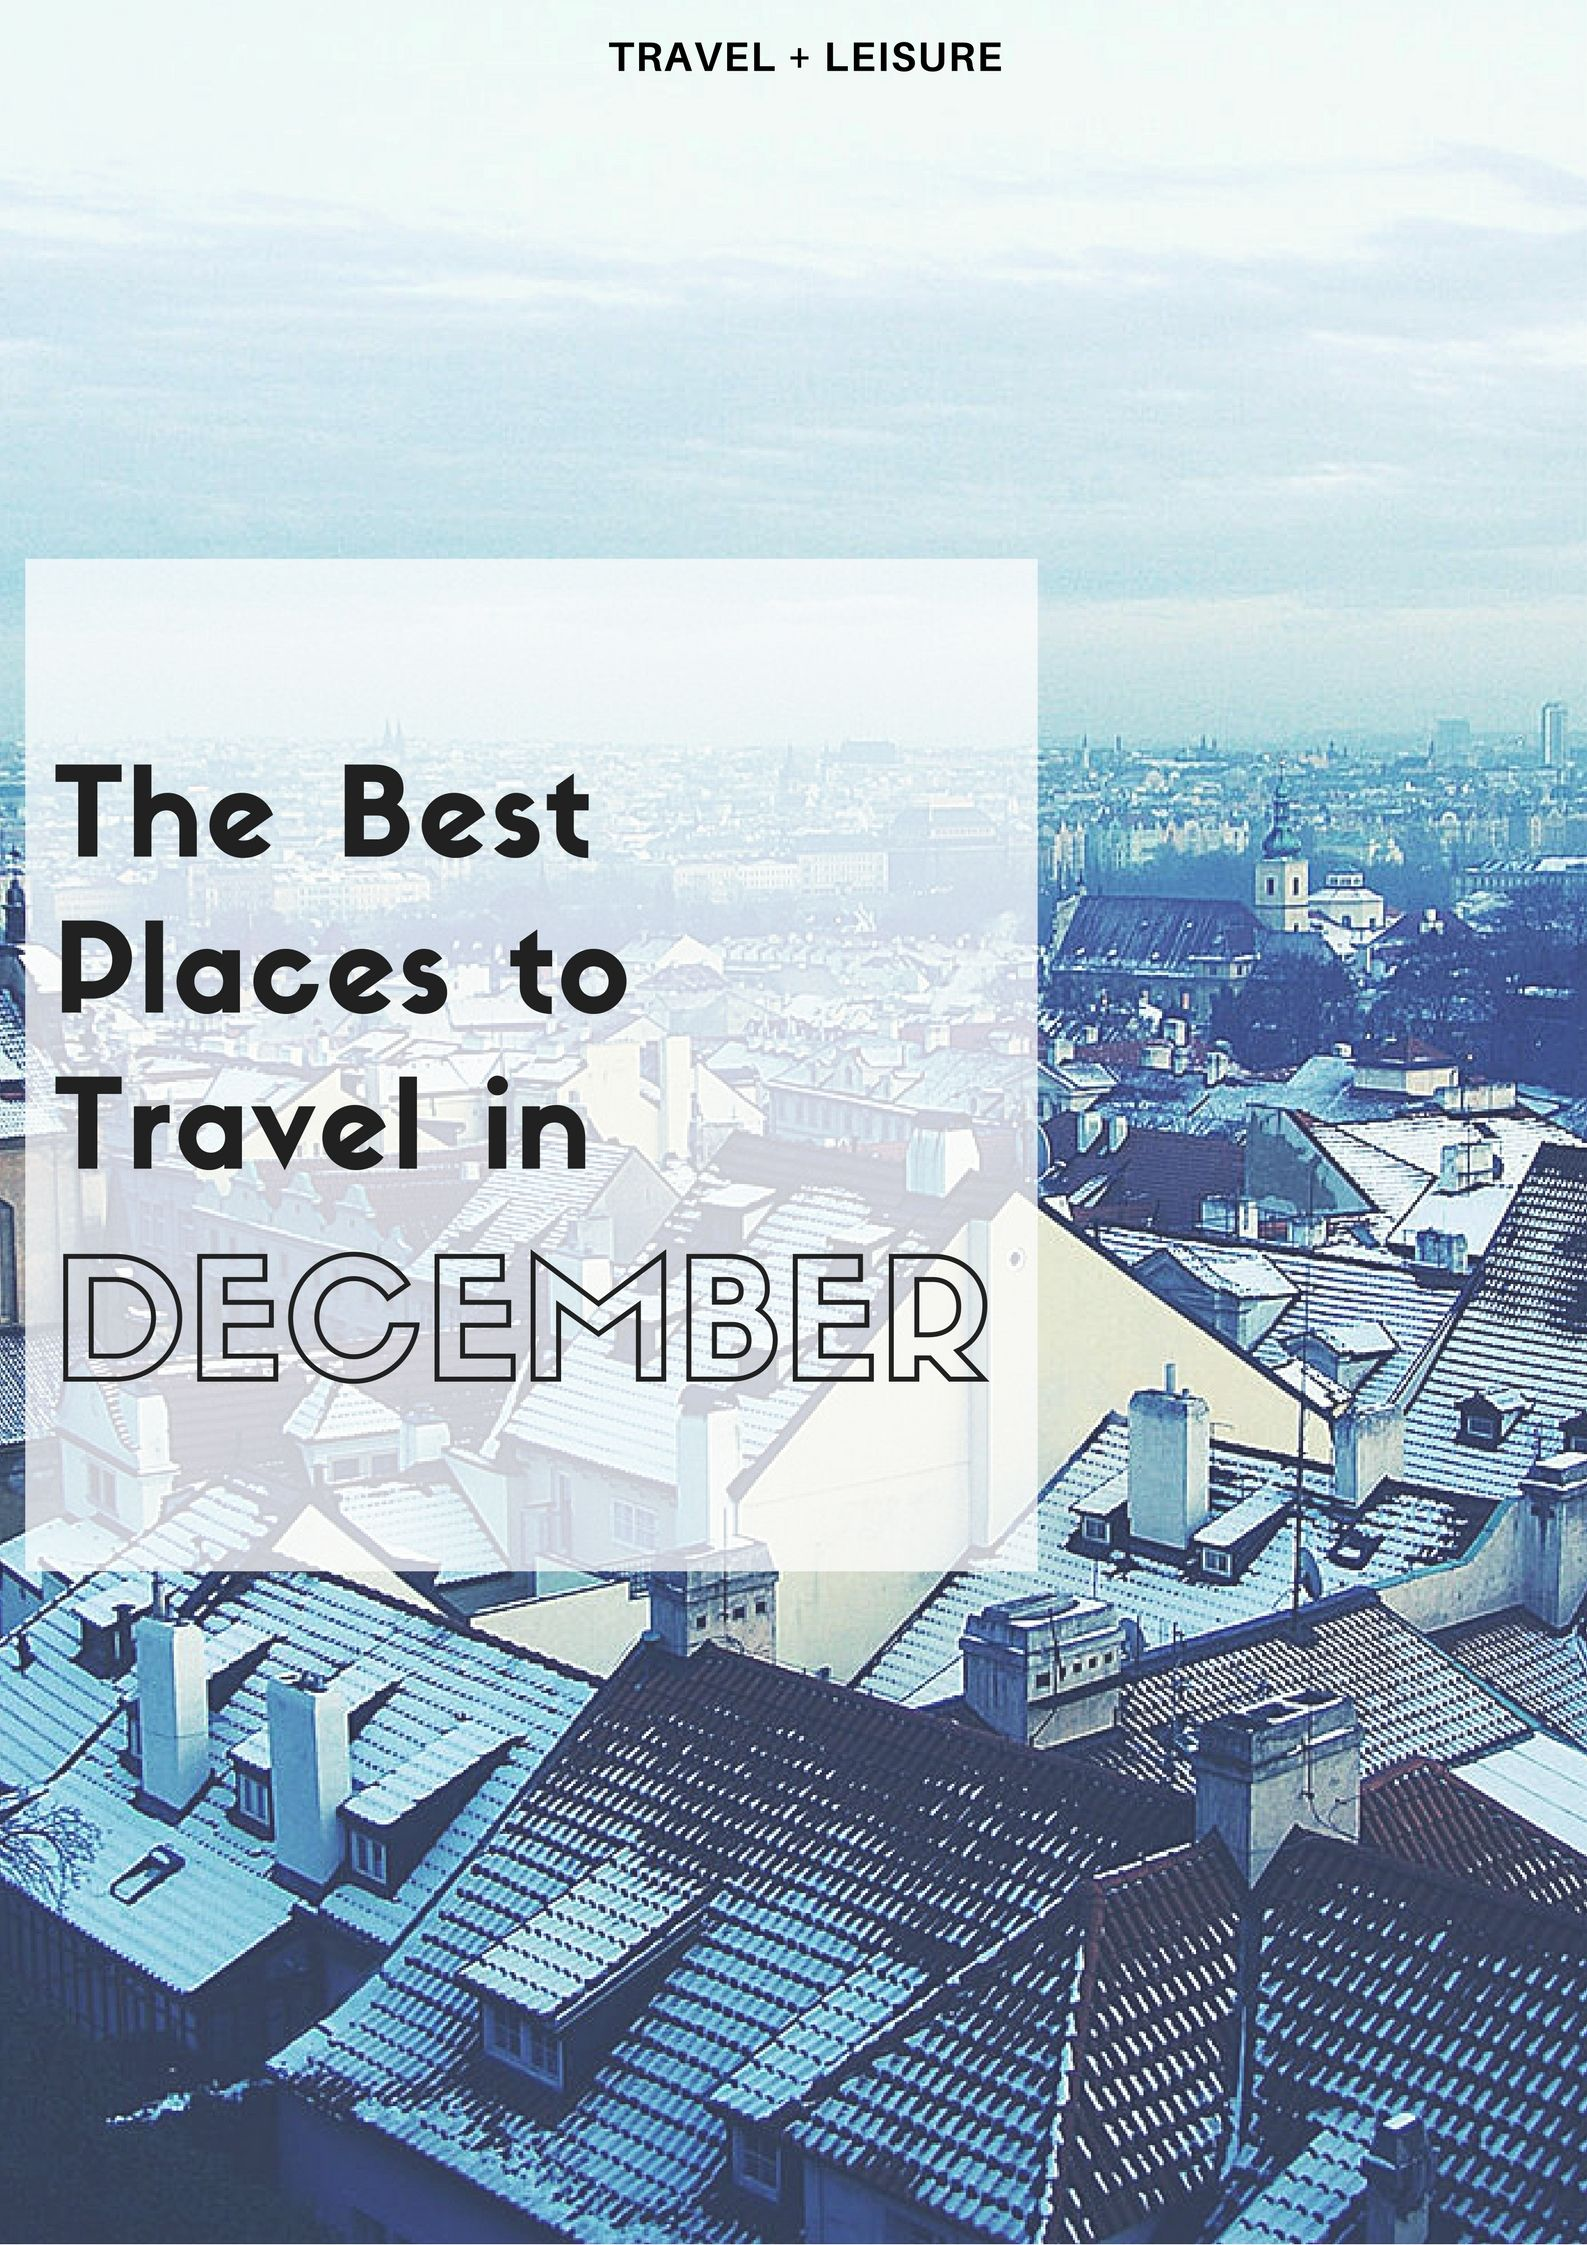 The best places to travel in december december for Warm places to travel in december